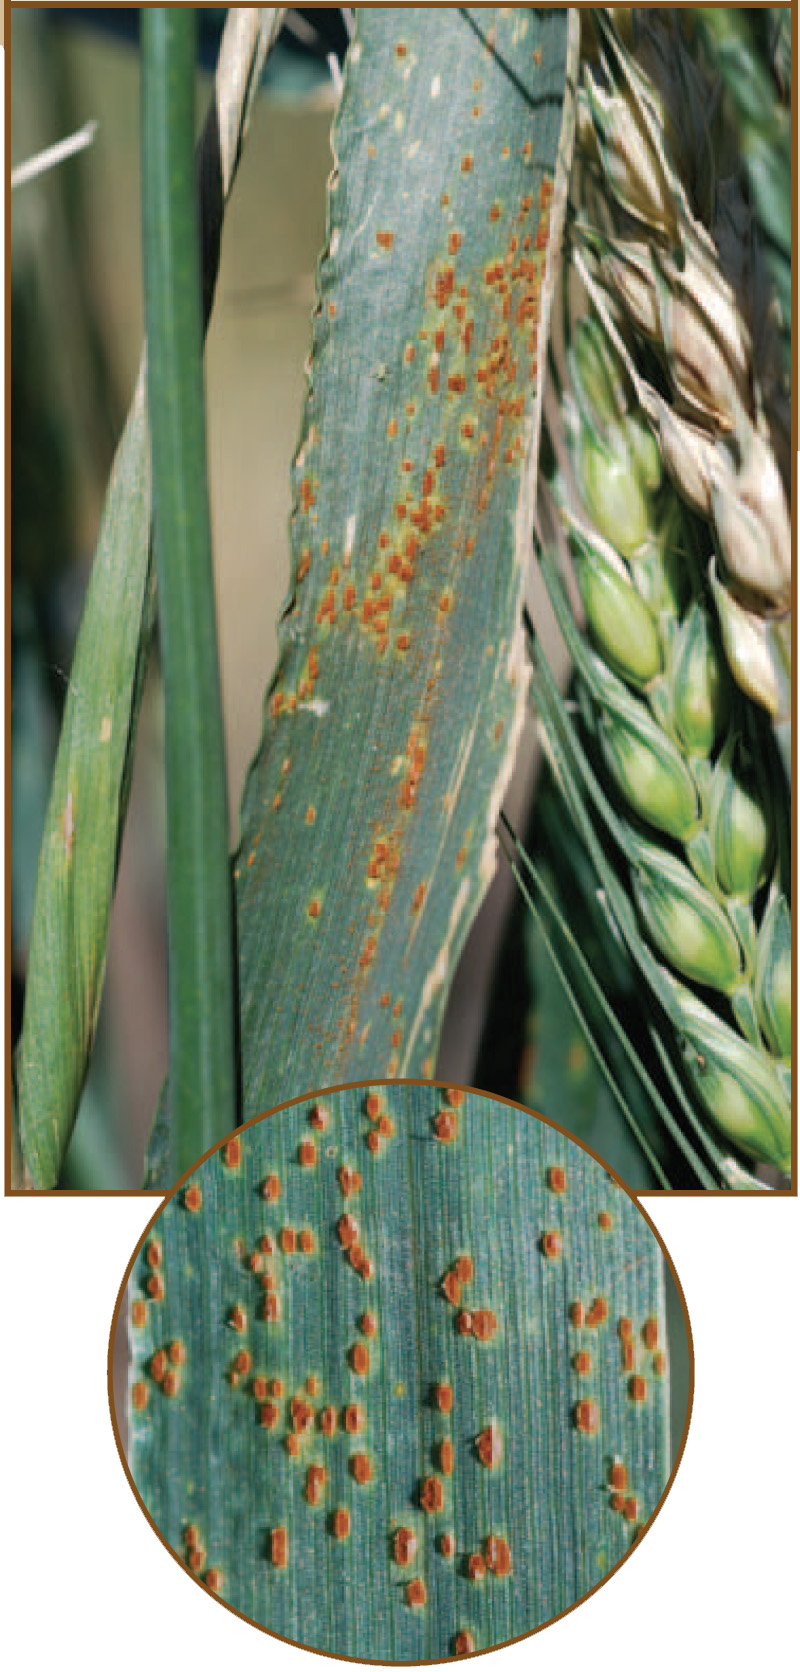 An example of leaf rust.